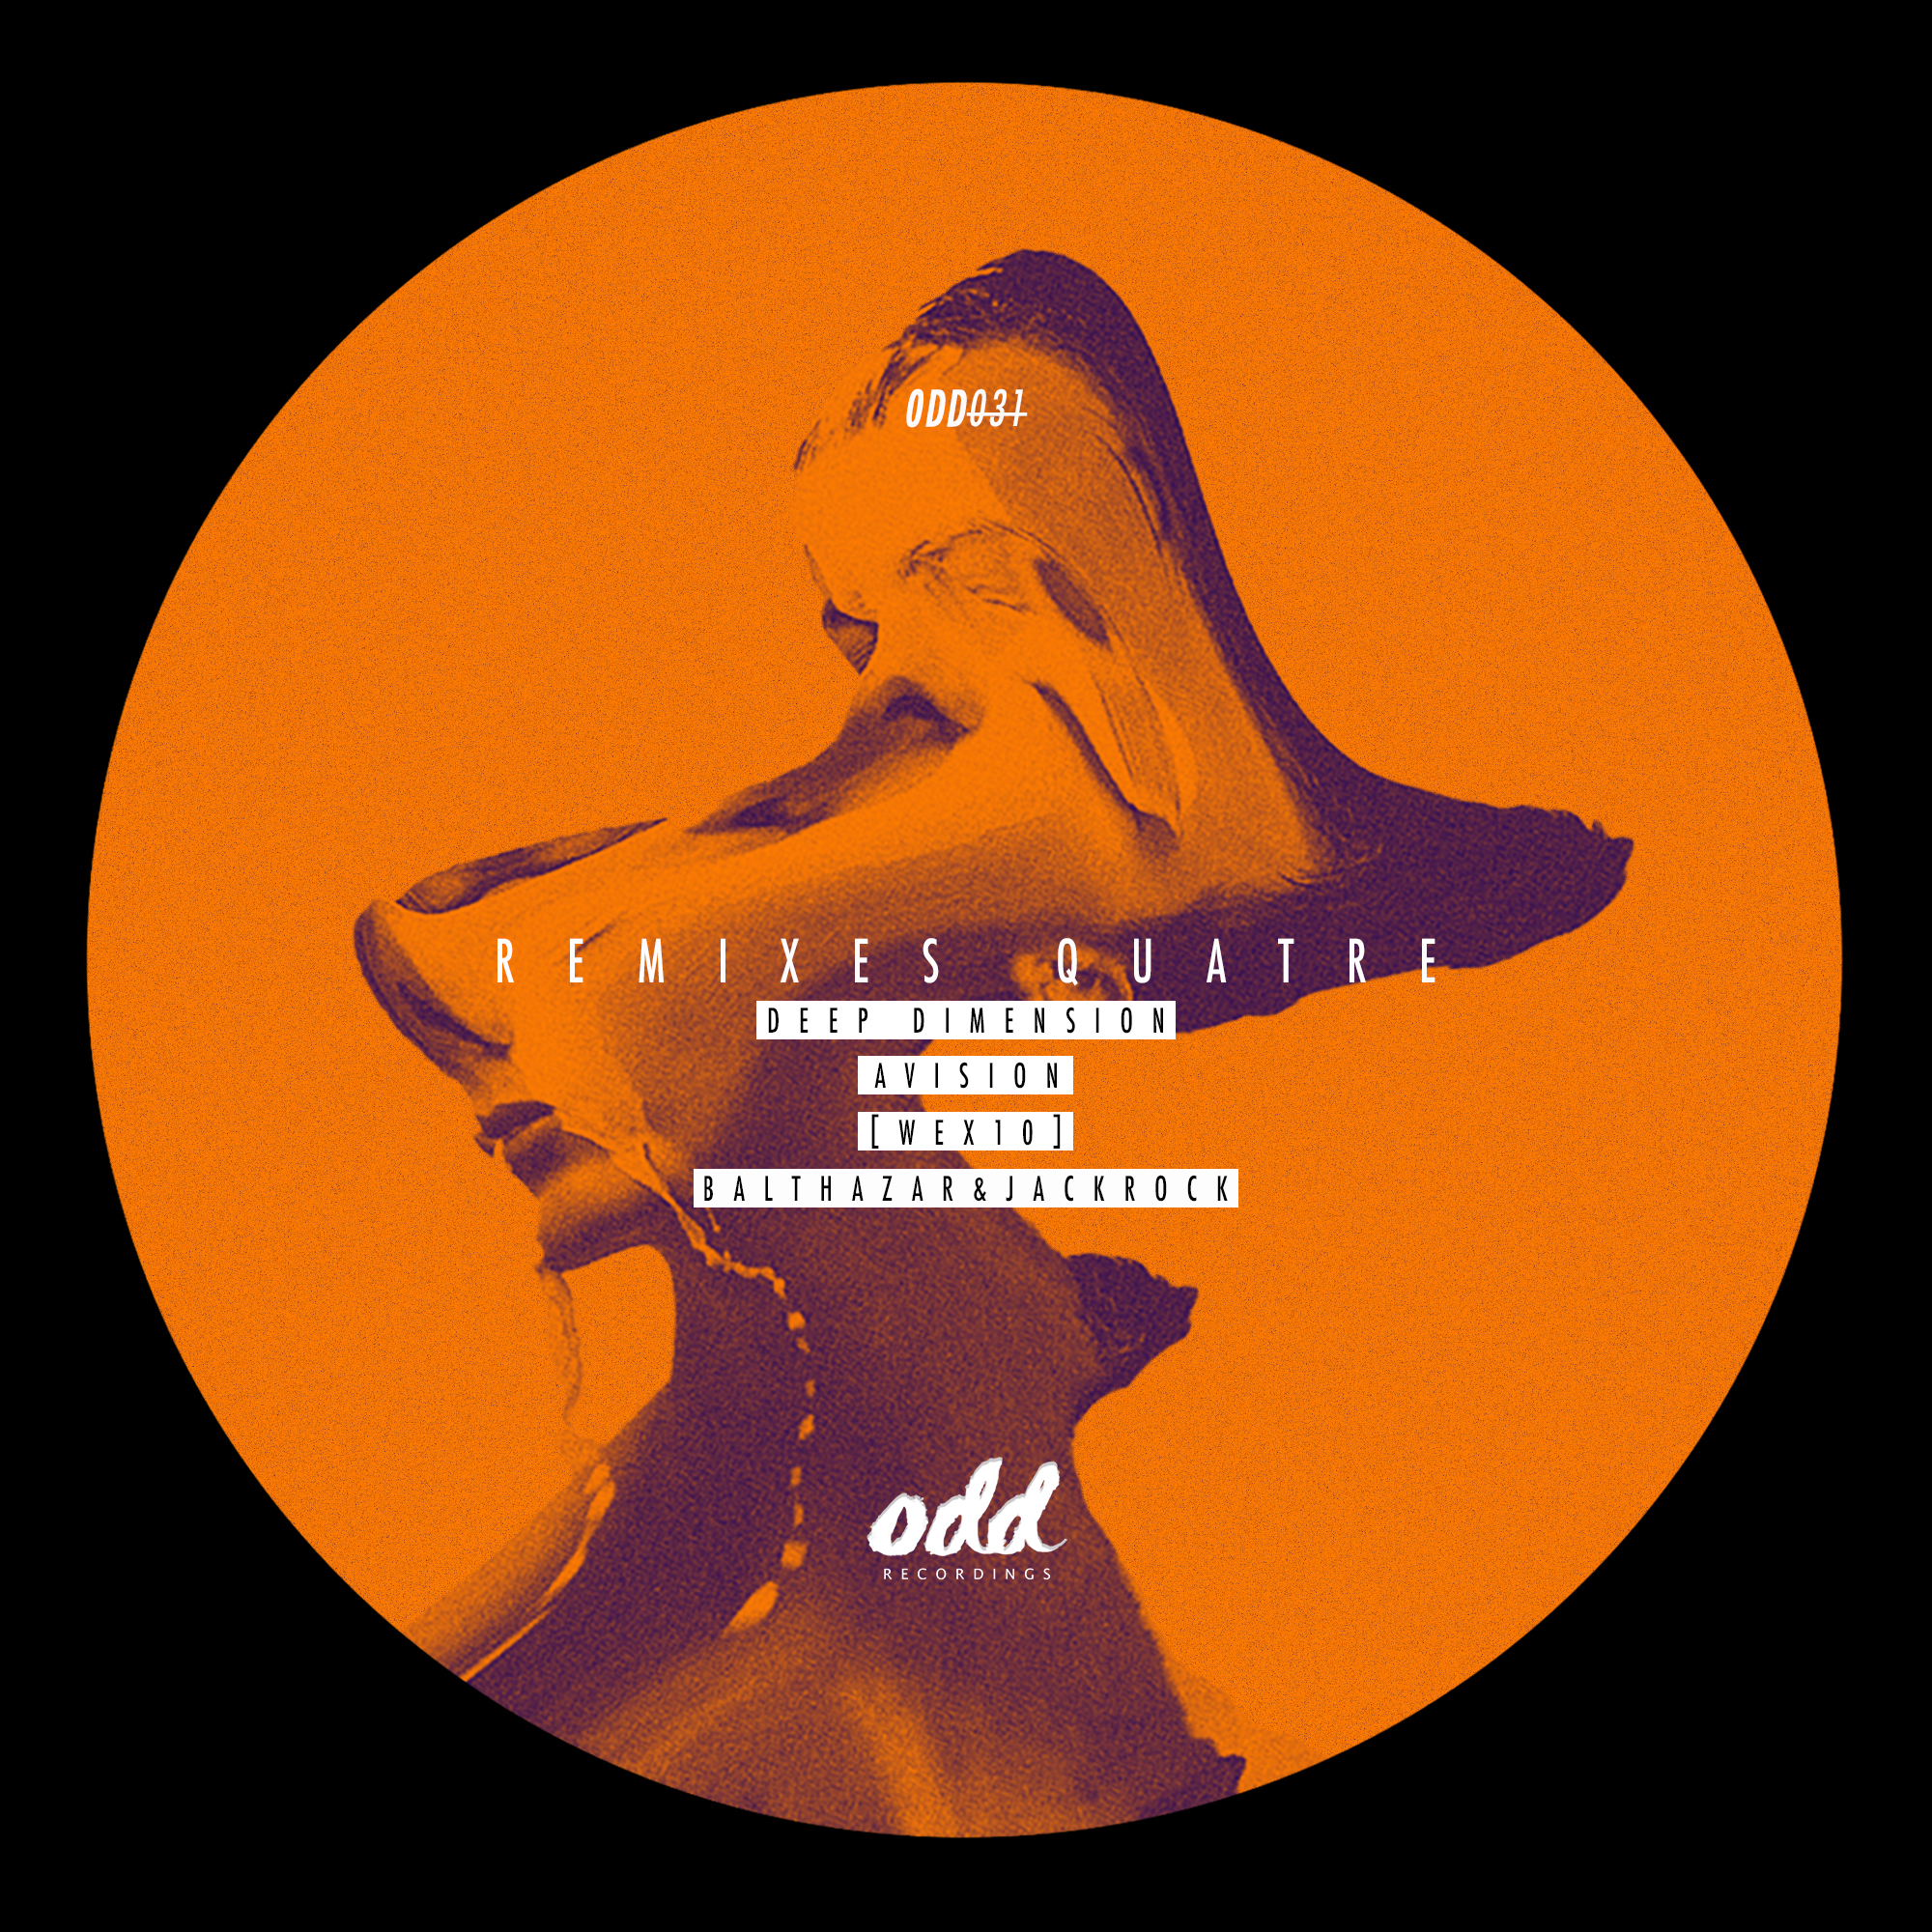 ODD031 - Various - Remixes Quatre